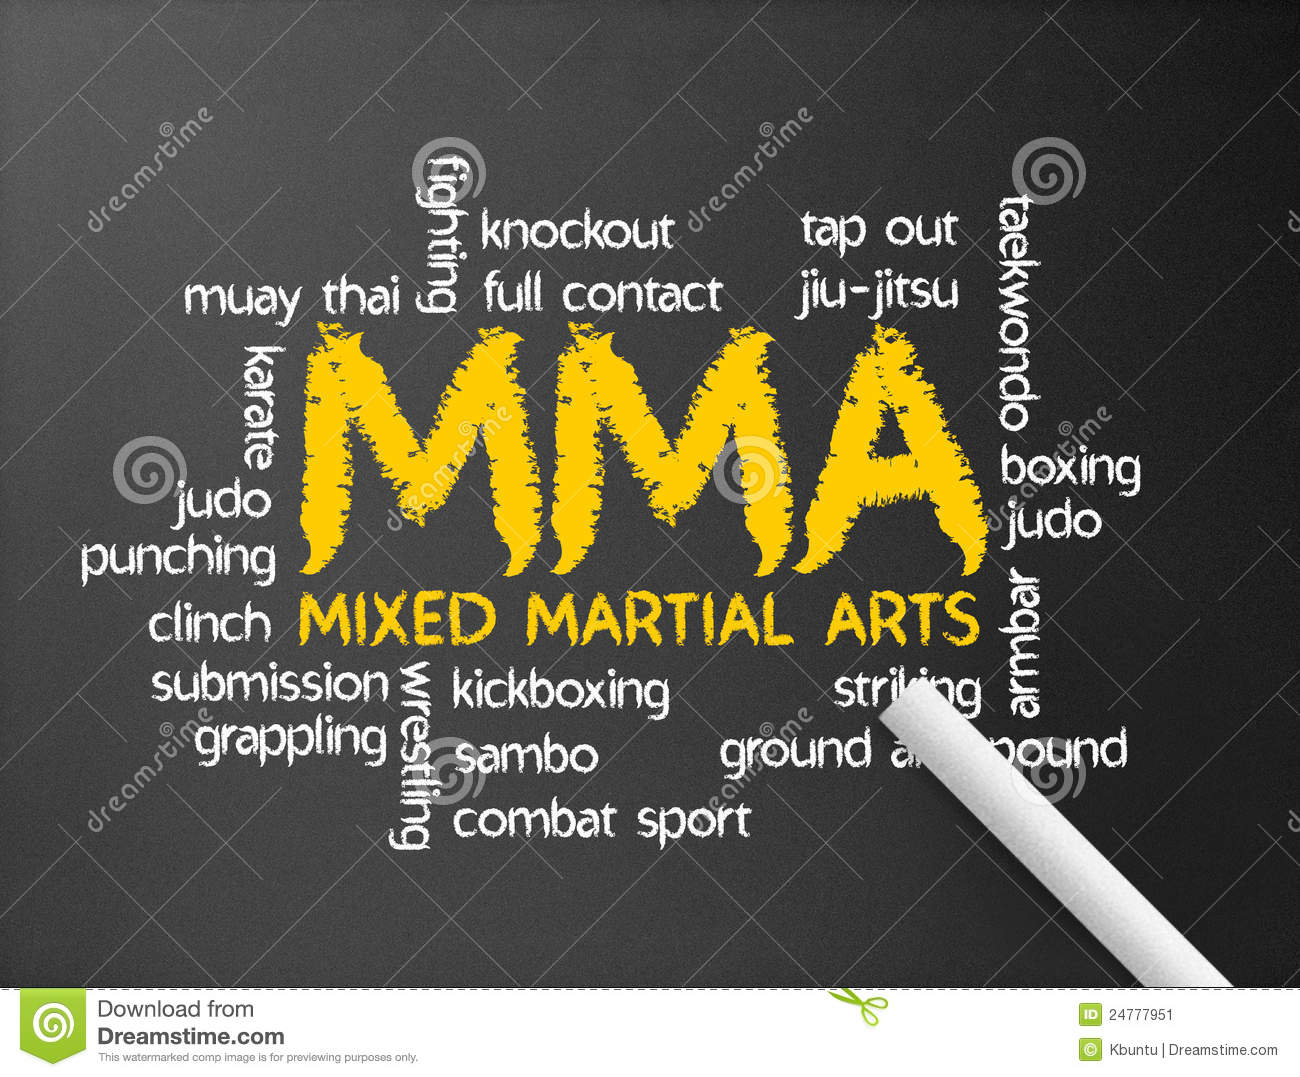 Mixed Martial Arts Stock Image - Image: 24777951